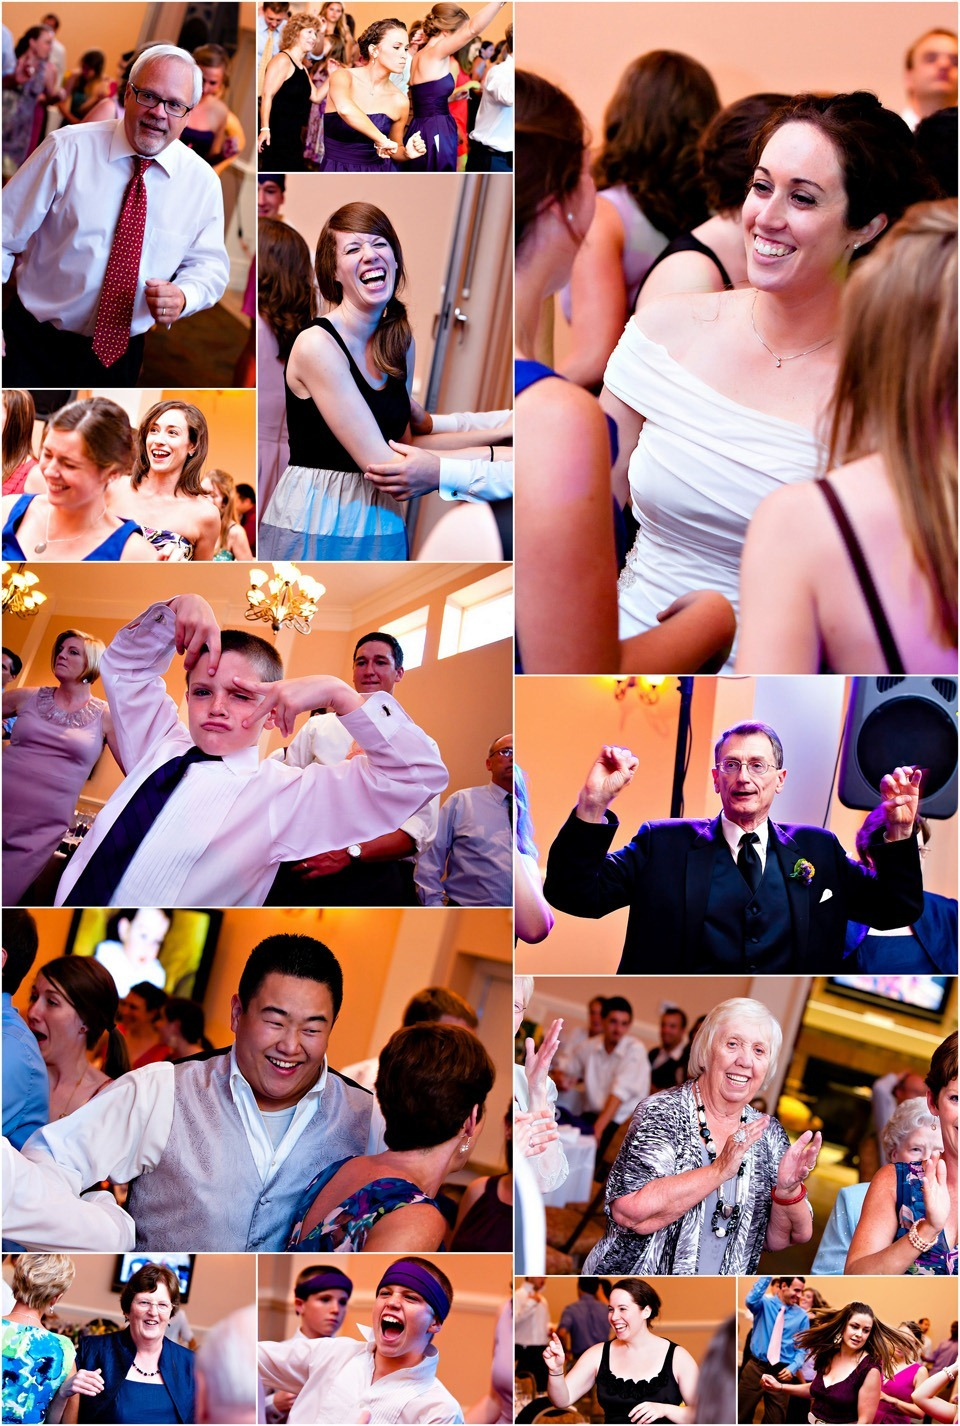 Milestone Events - Dancing during Wedding Reception